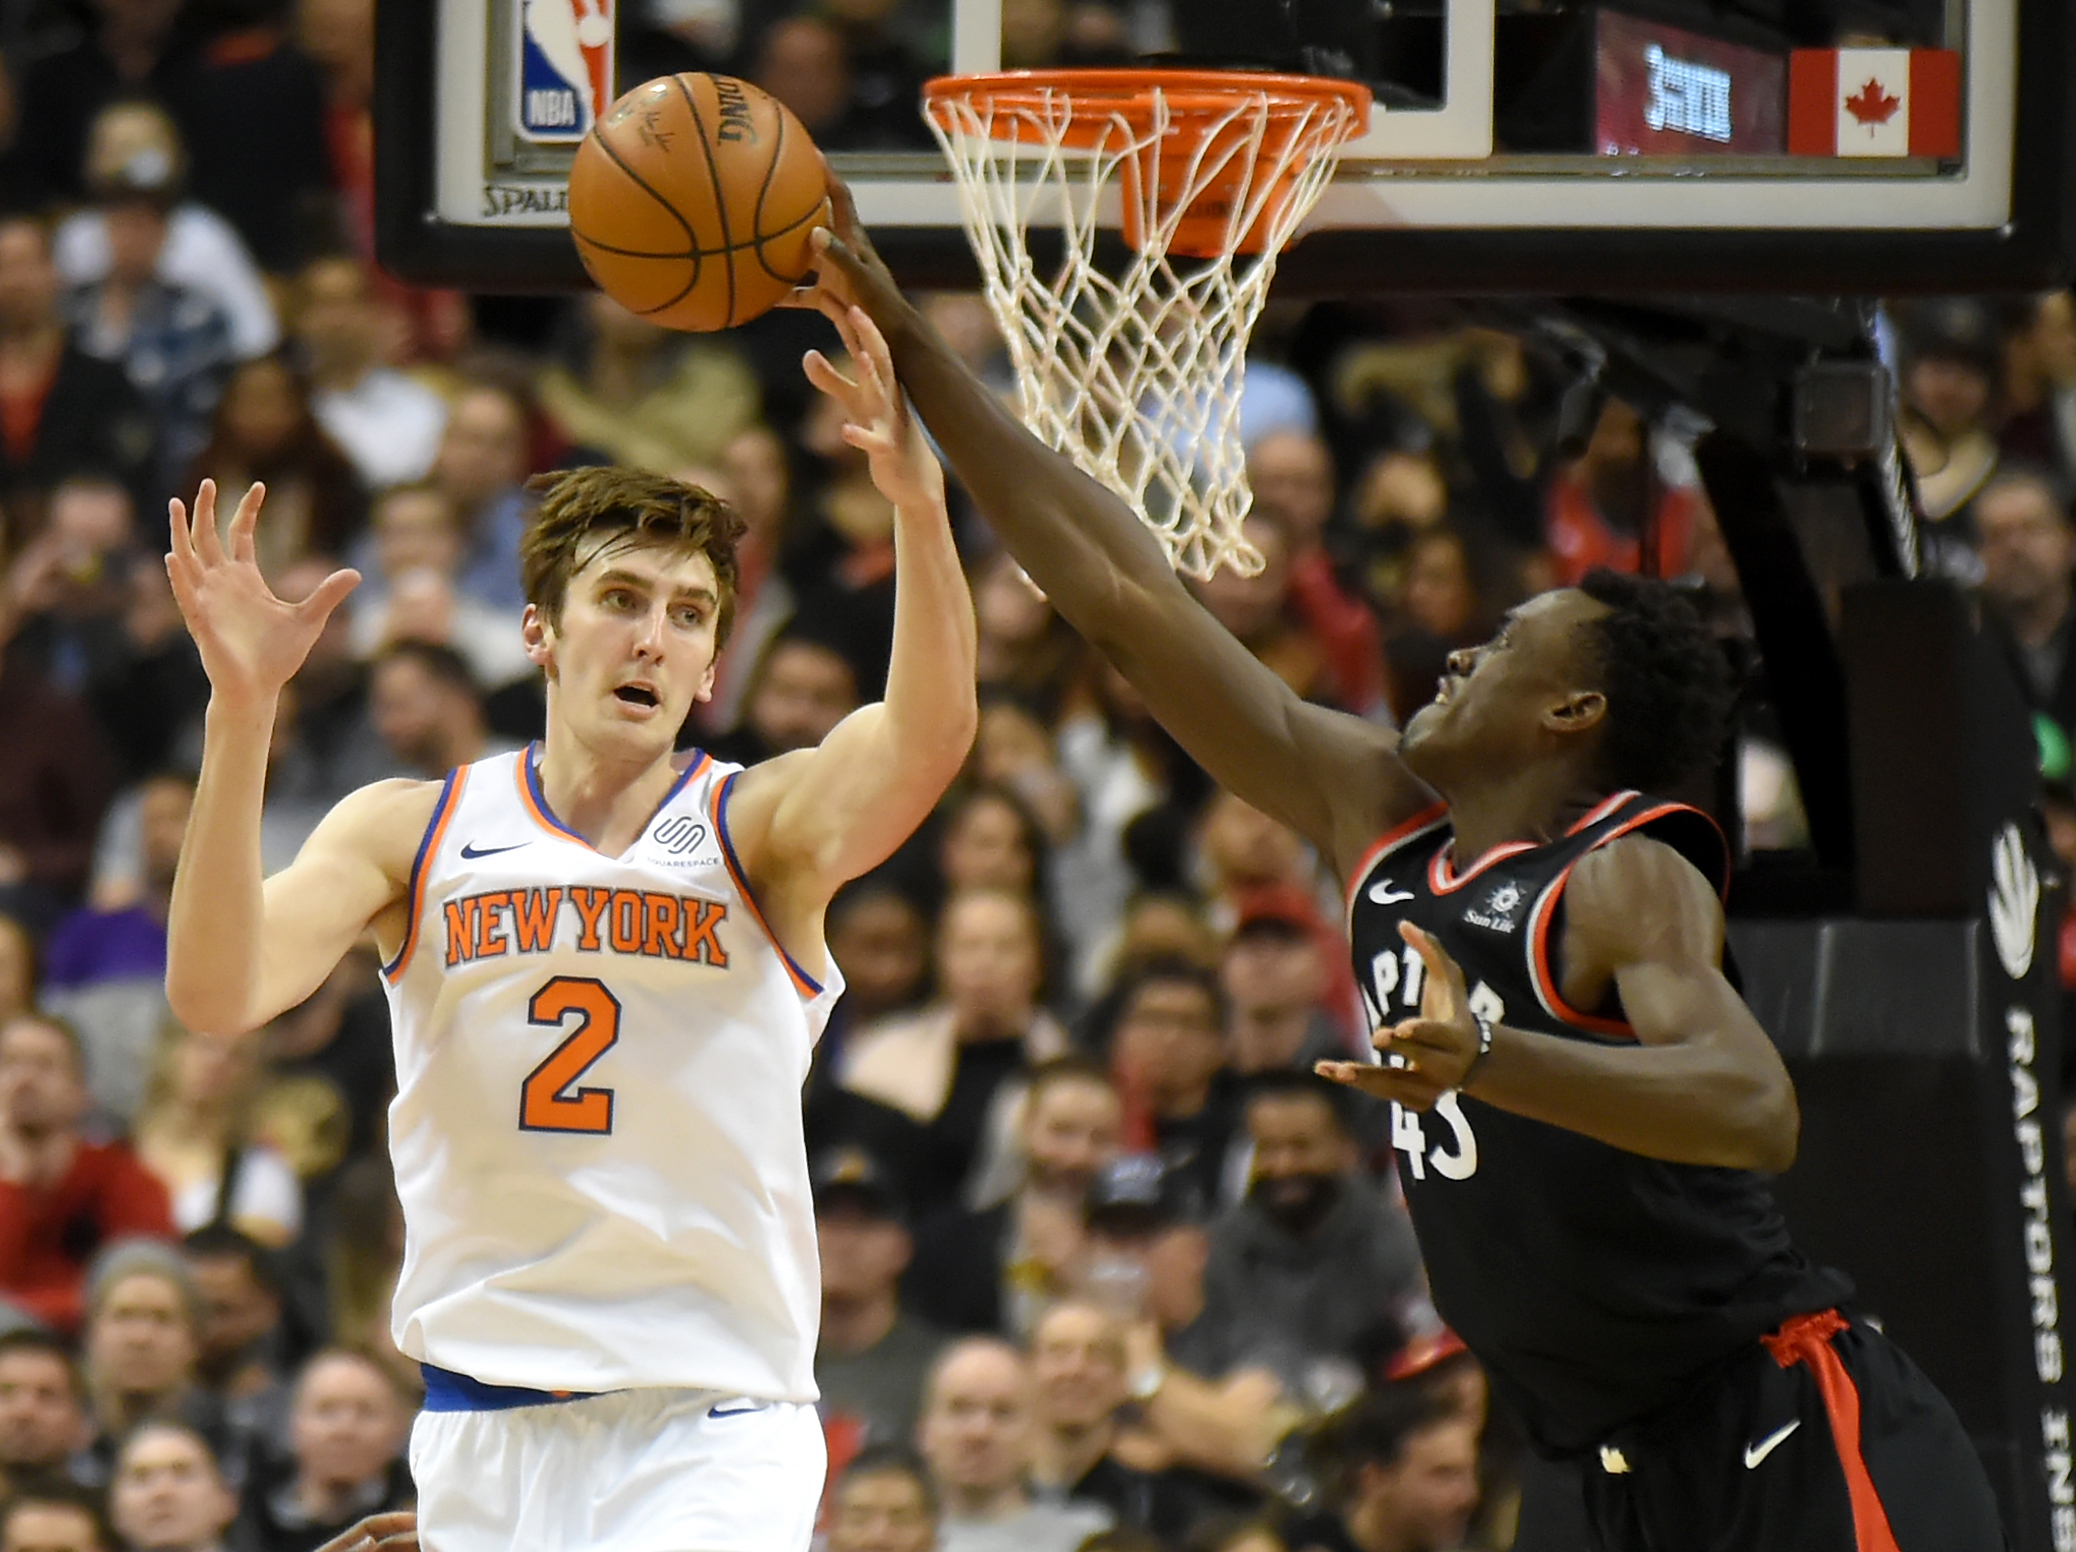 Luke Kornet Shines Despite Knicks' Blowout Loss In NBA Debut